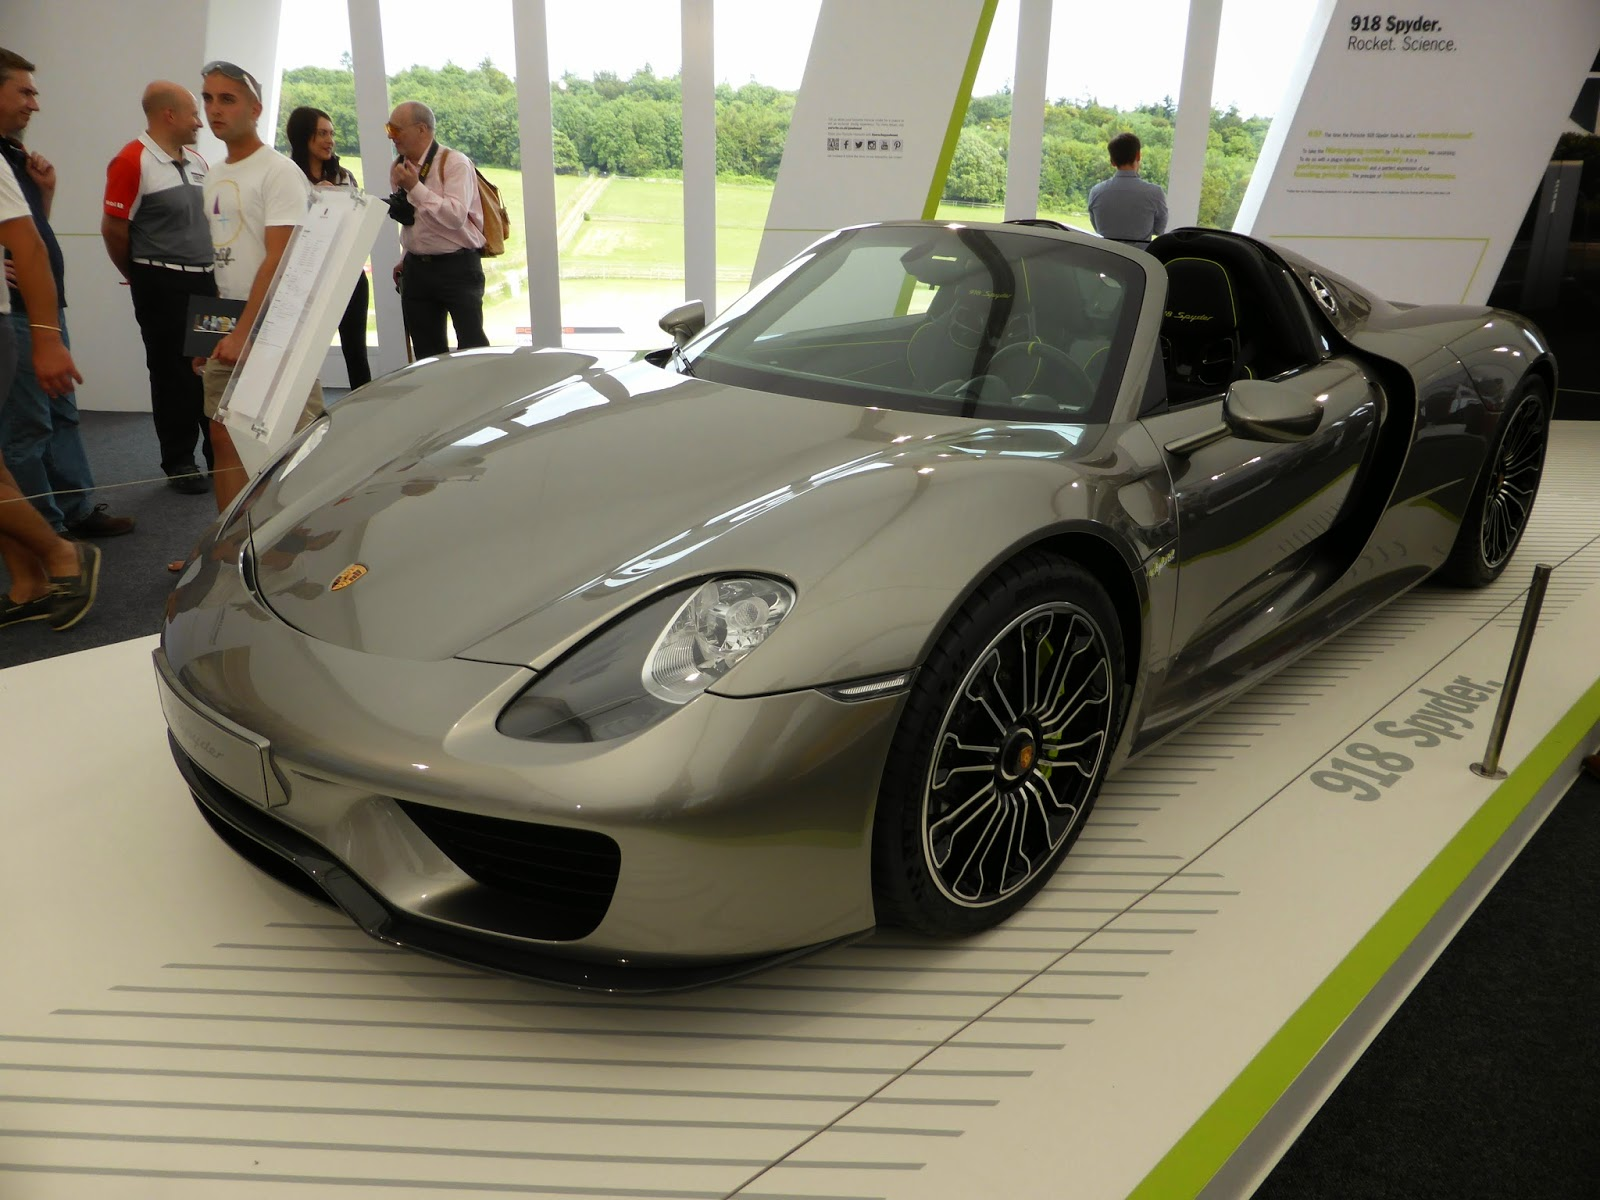 You'll find this Porsche 918 Spider in the huge Porsche building at the north east of the site